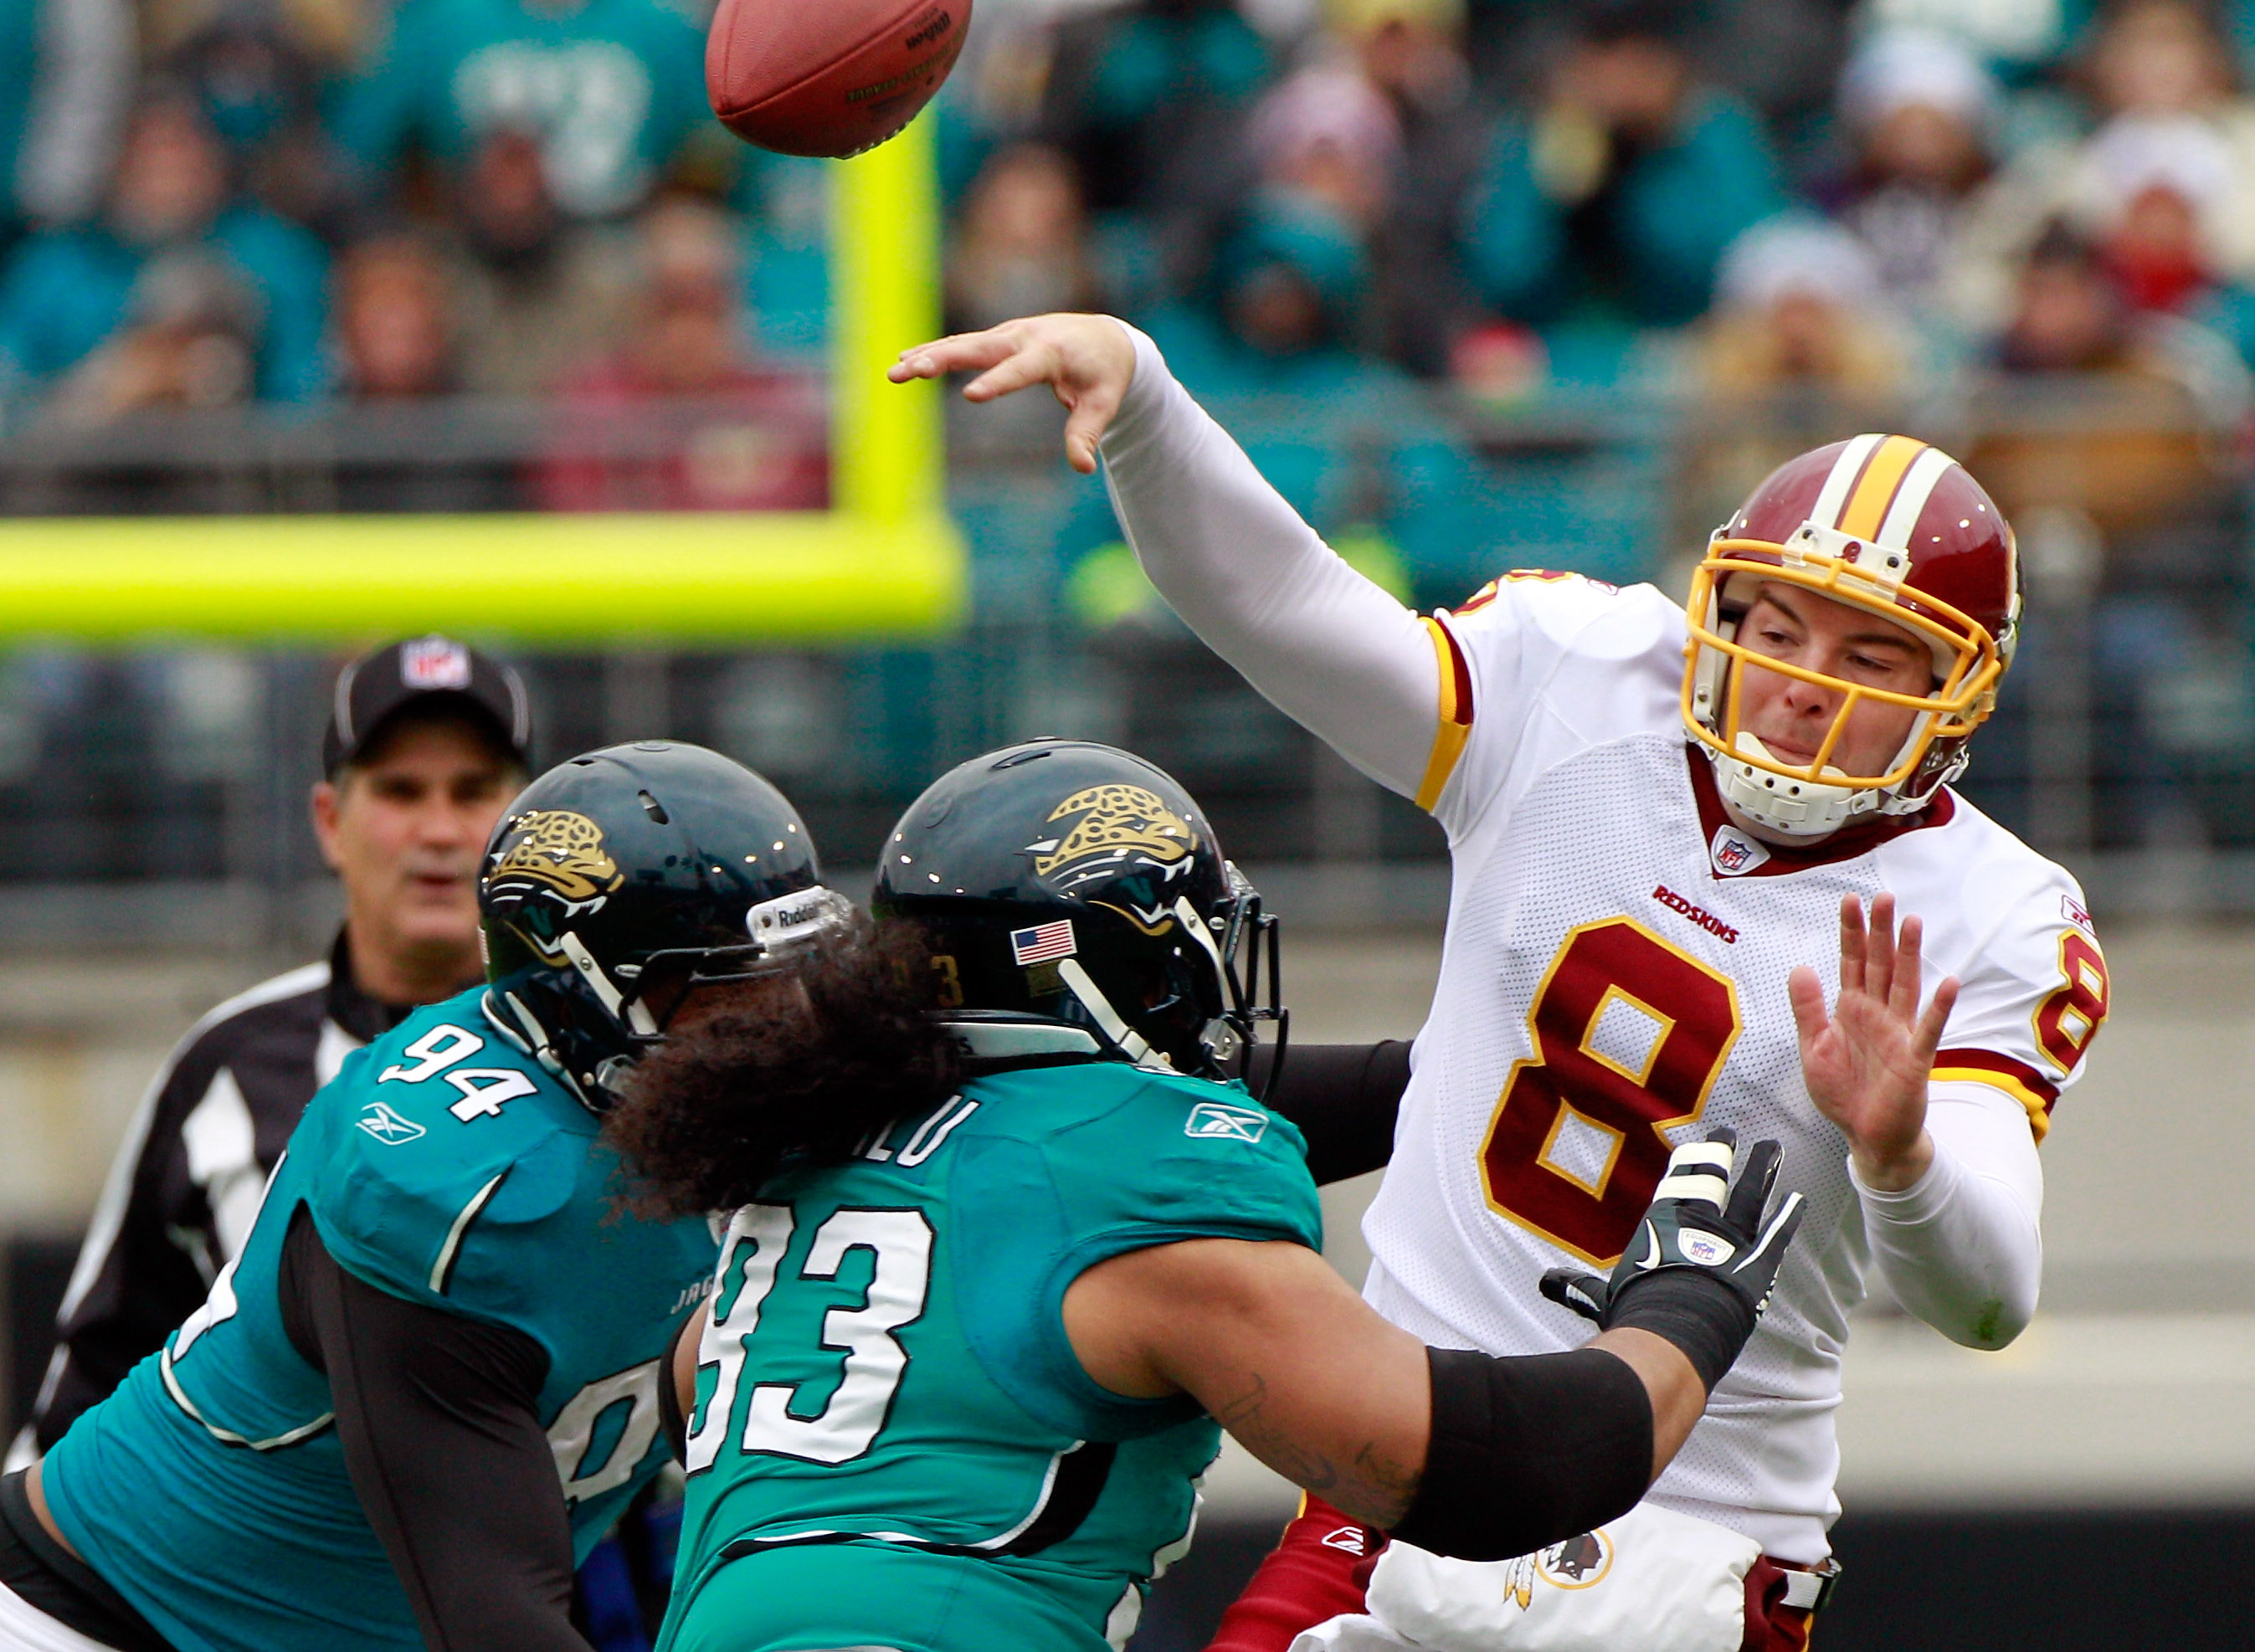 JACKSONVILLE, FL - DECEMBER 26: Quarterback Rex Grossman #8 of the Washington Redskins is pressured by Tyson Alualu #93 and Jeremy Mincey #94 of the Jacksonville Jaguars during the game at EverBank Field on December 26, 2010 in Jacksonville, Florida.  (Ph